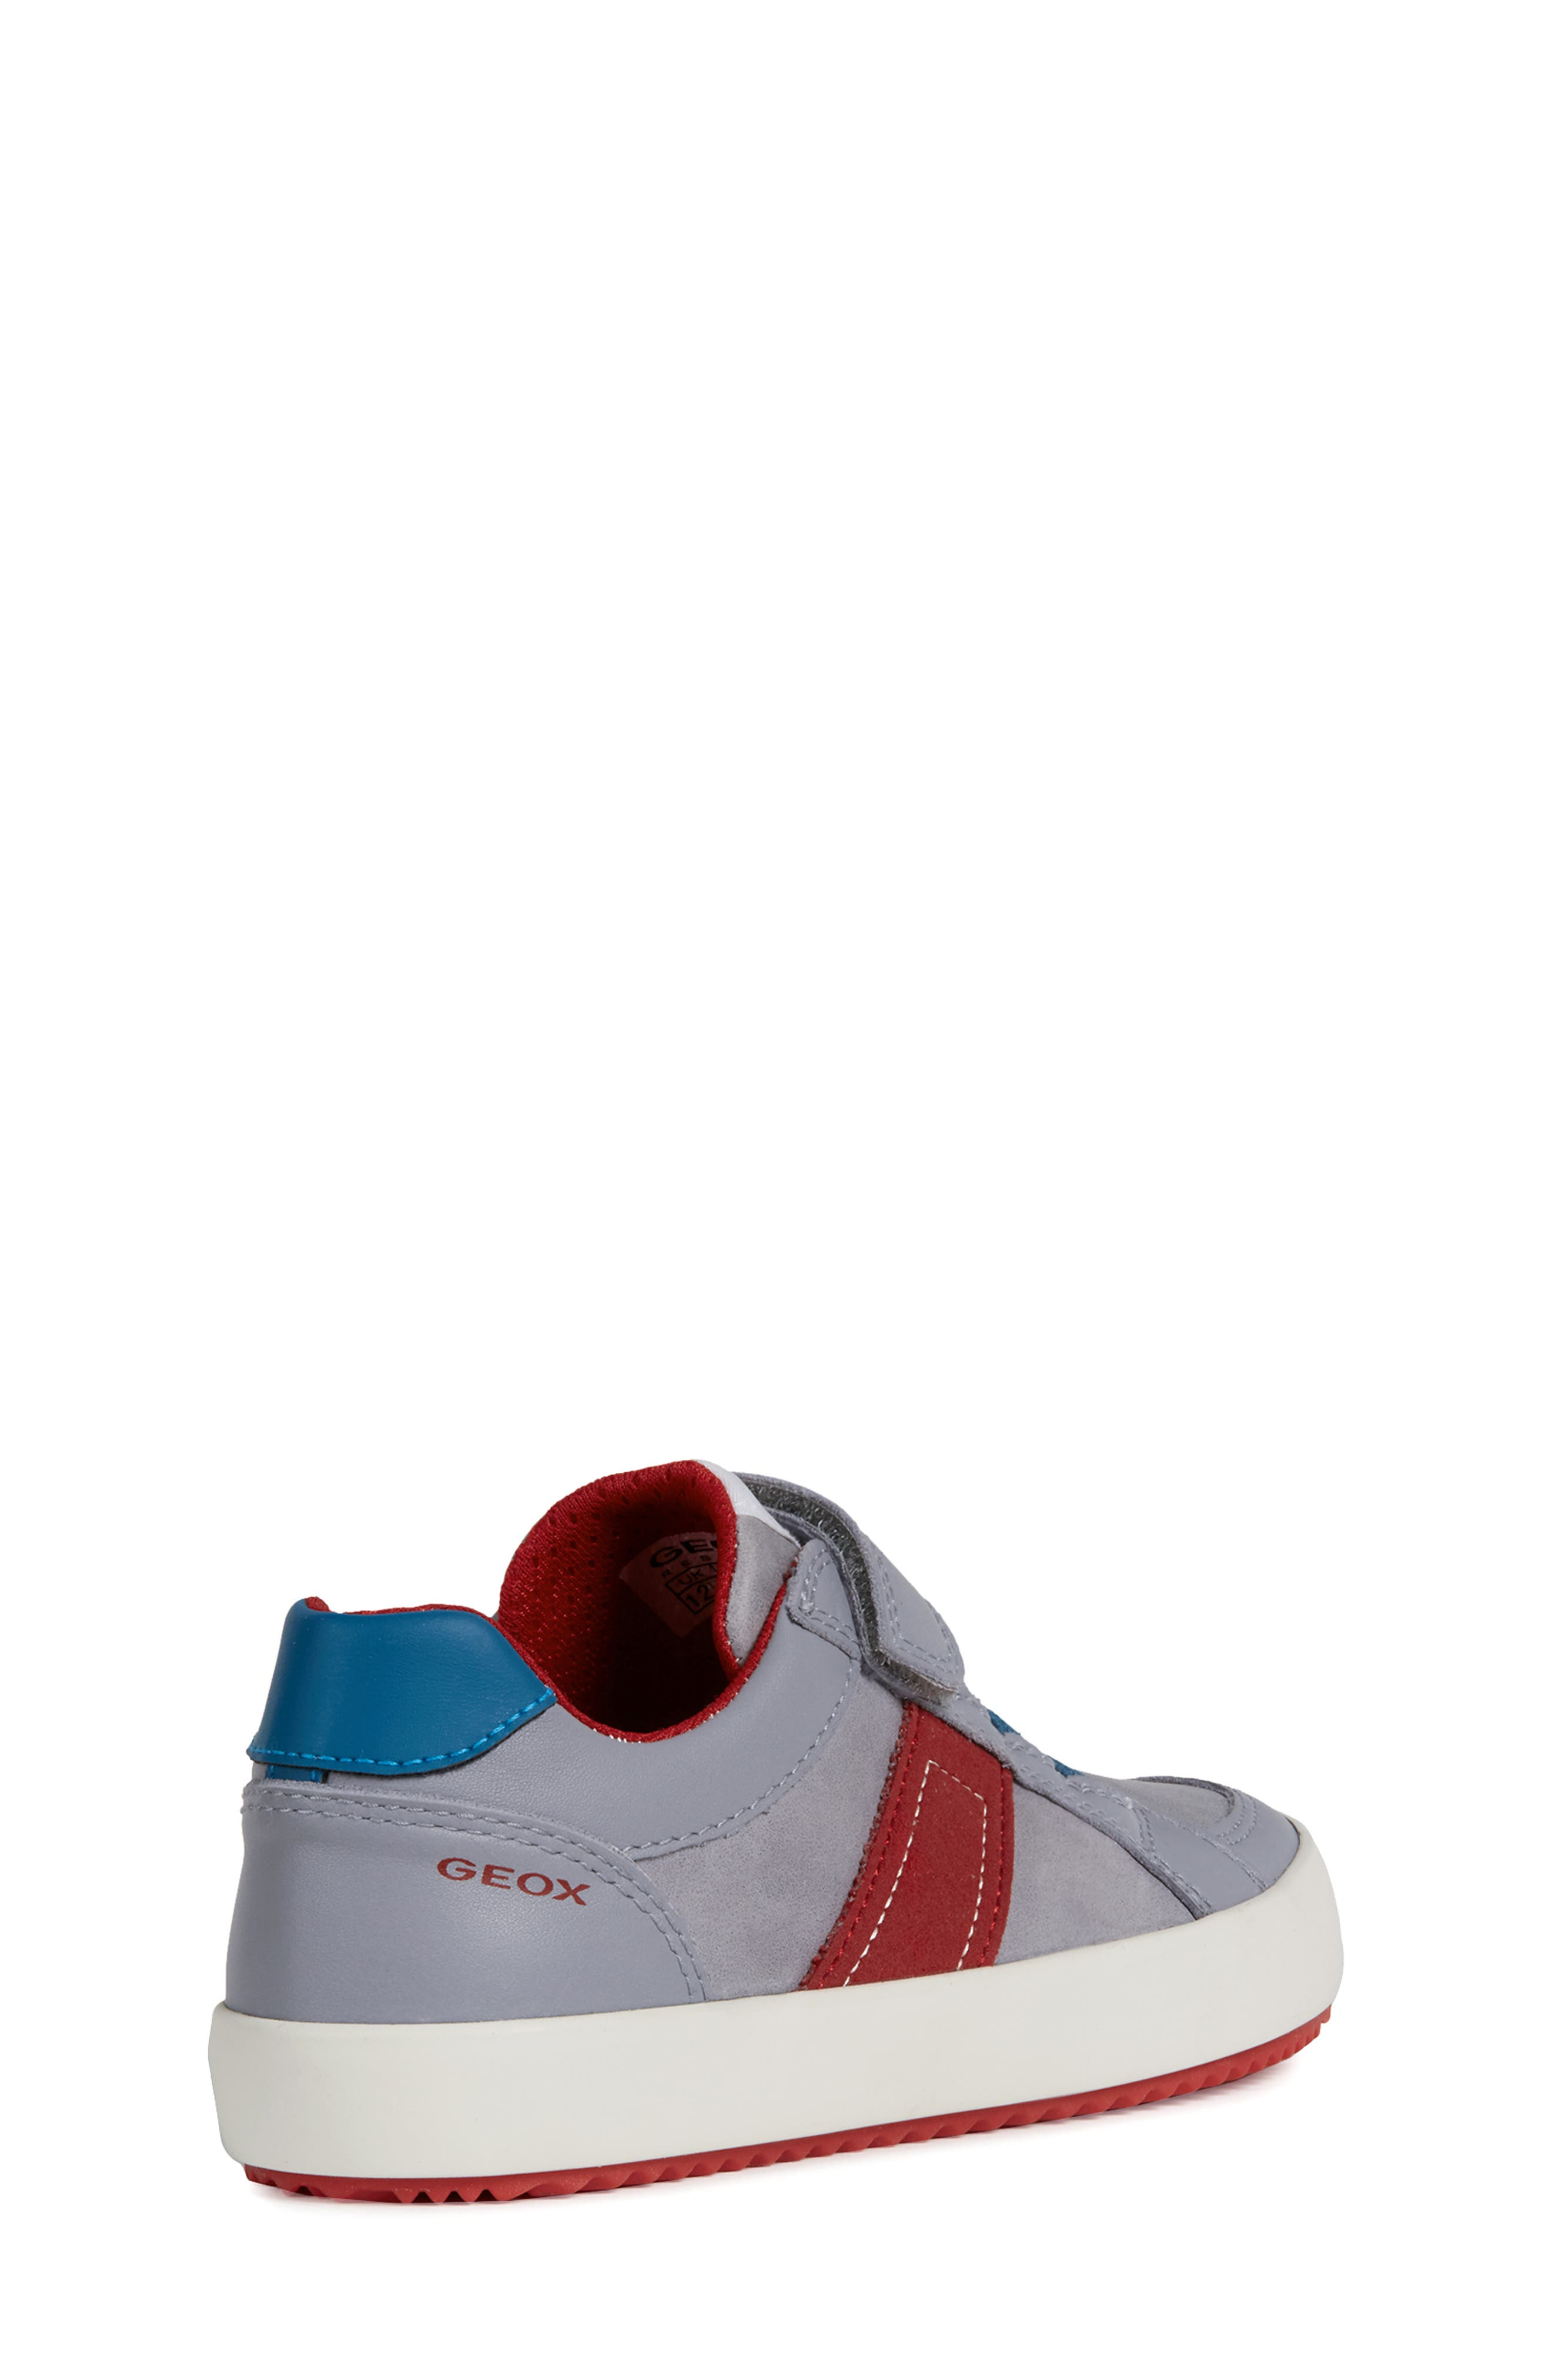 Alonisso Low Top Sneaker,                             Alternate thumbnail 7, color,                             GREY/ RED